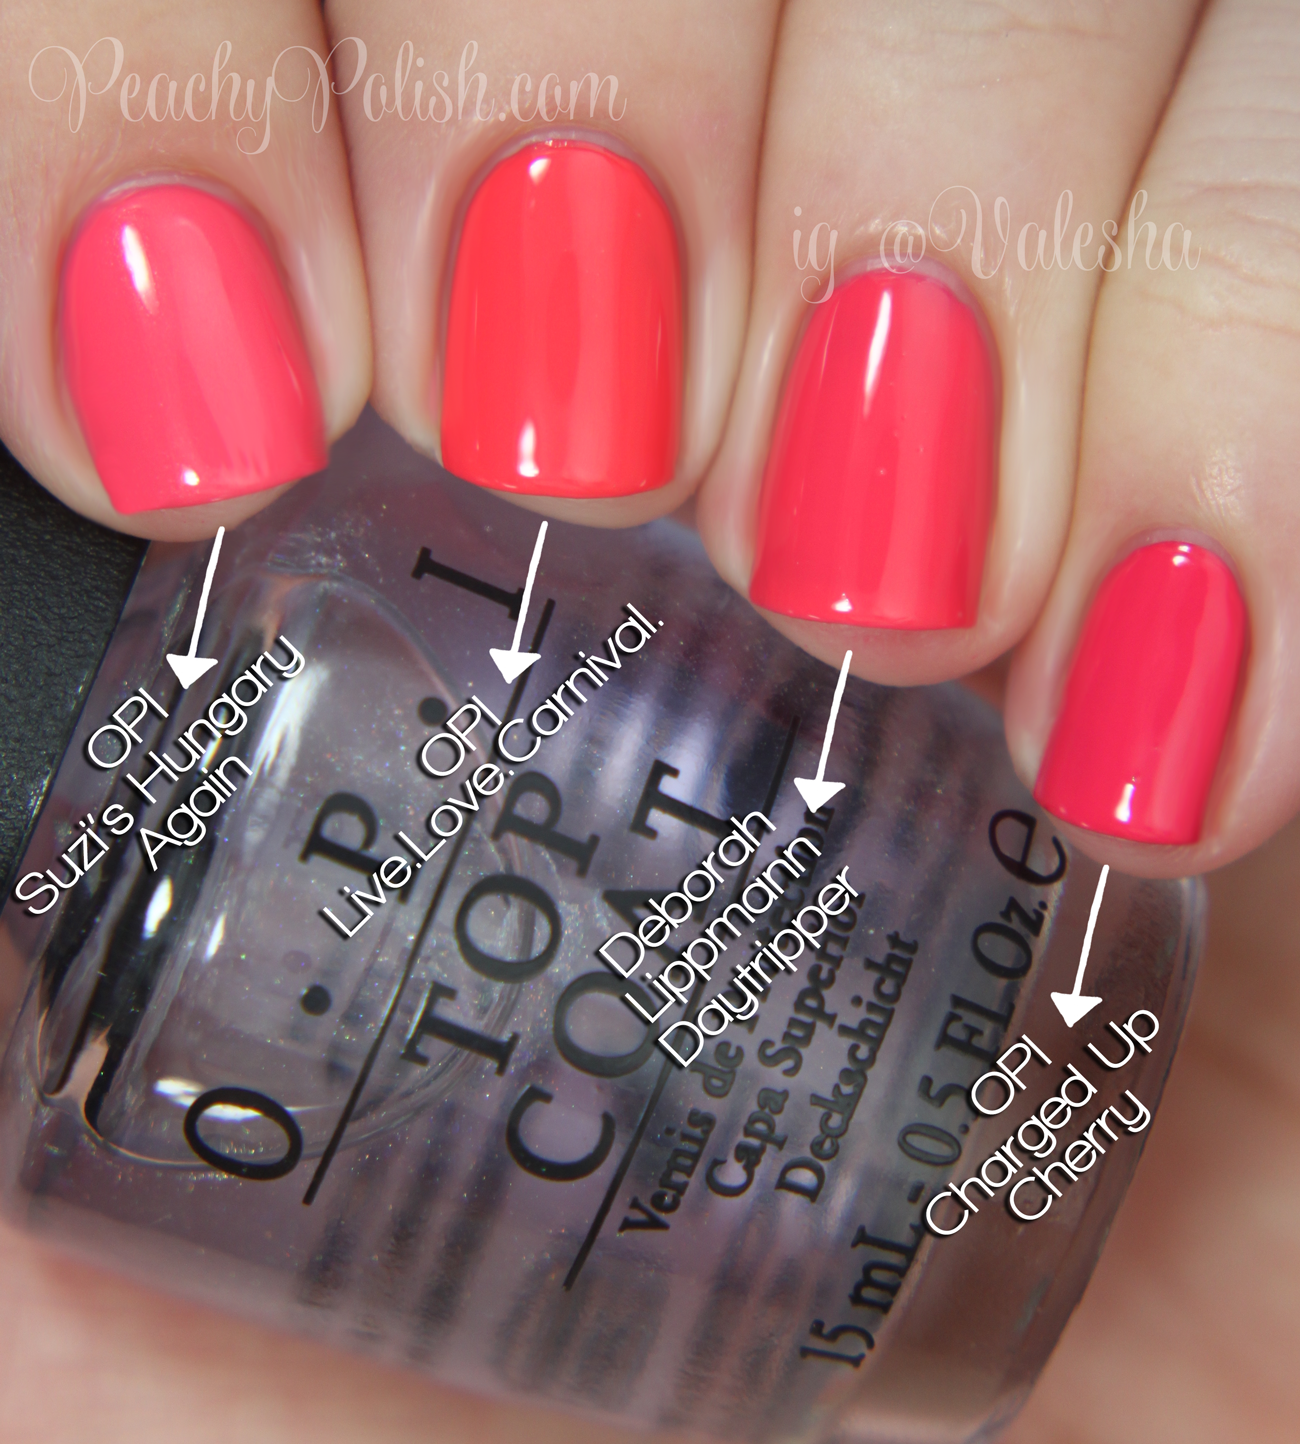 Opi Brazil Collection Comparisons Opi Gel Nails Opi Nail Polish Colors Opi Nail Colors